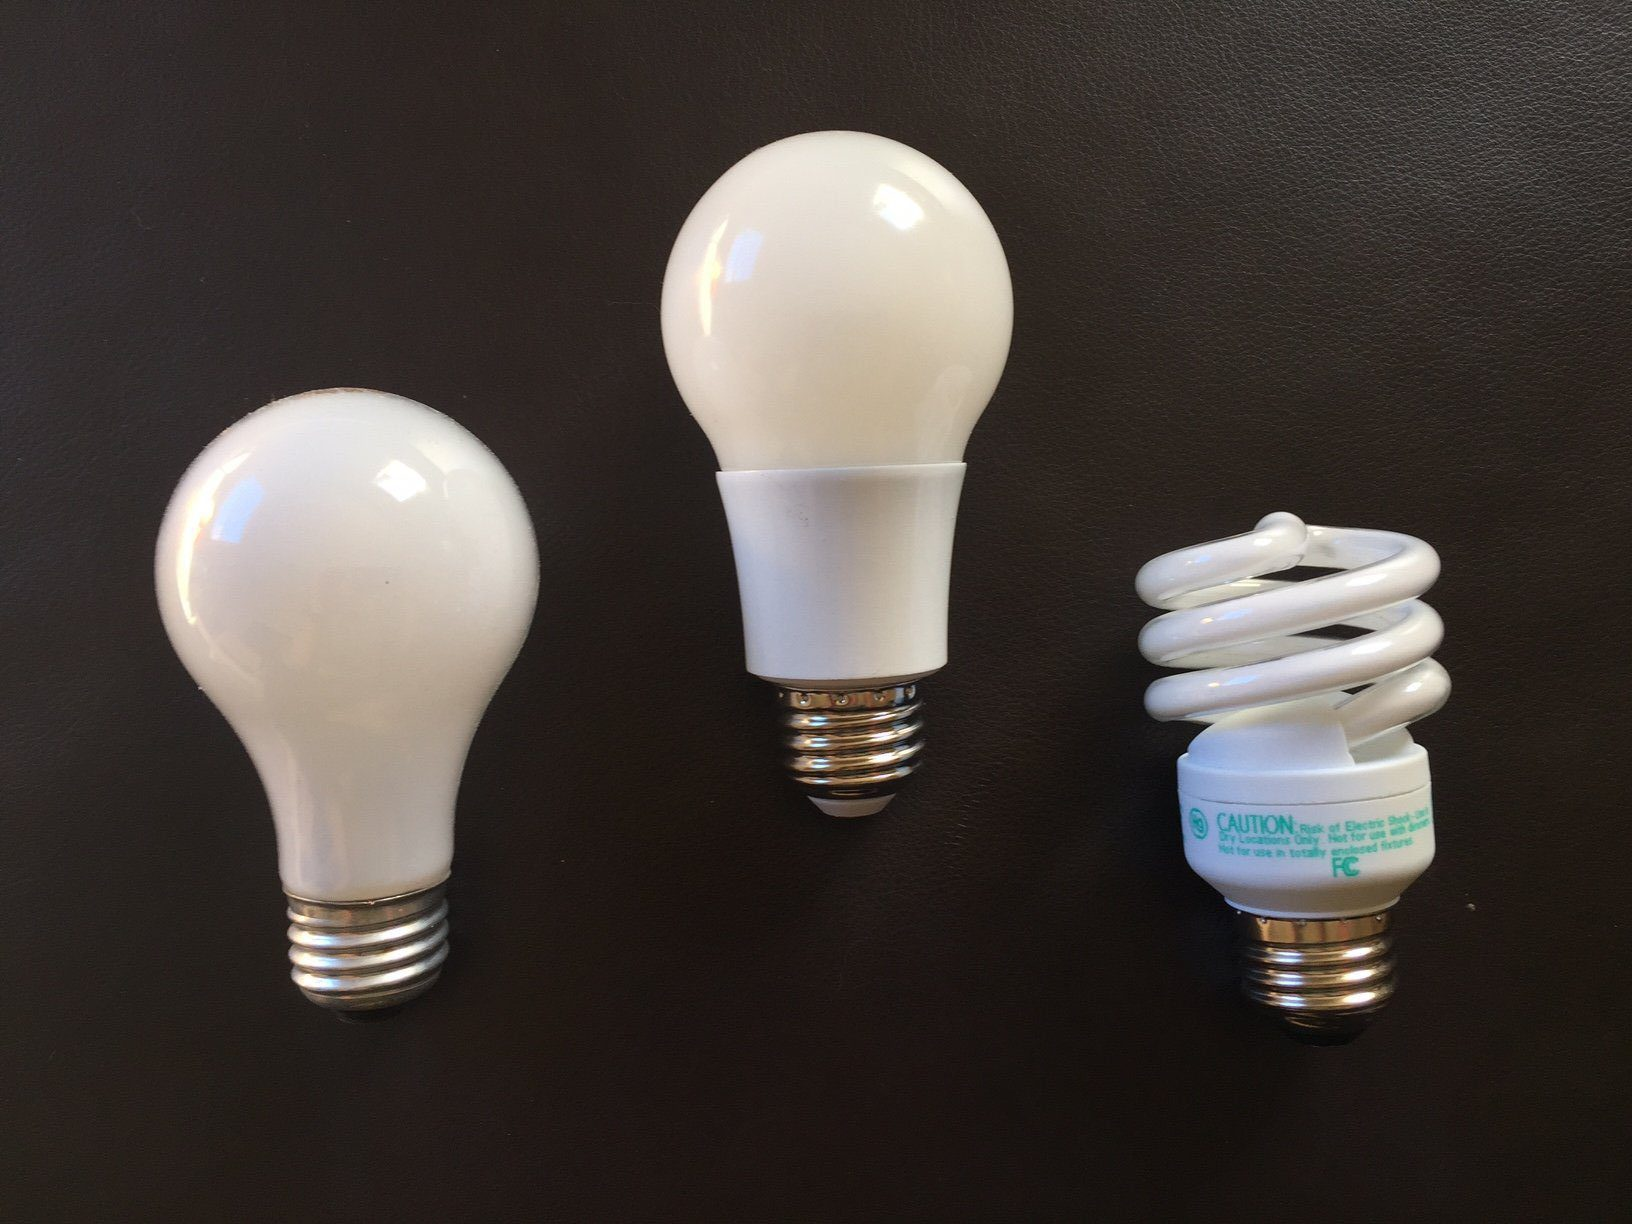 Commentary: Put your incandescent light bulbs in trash today